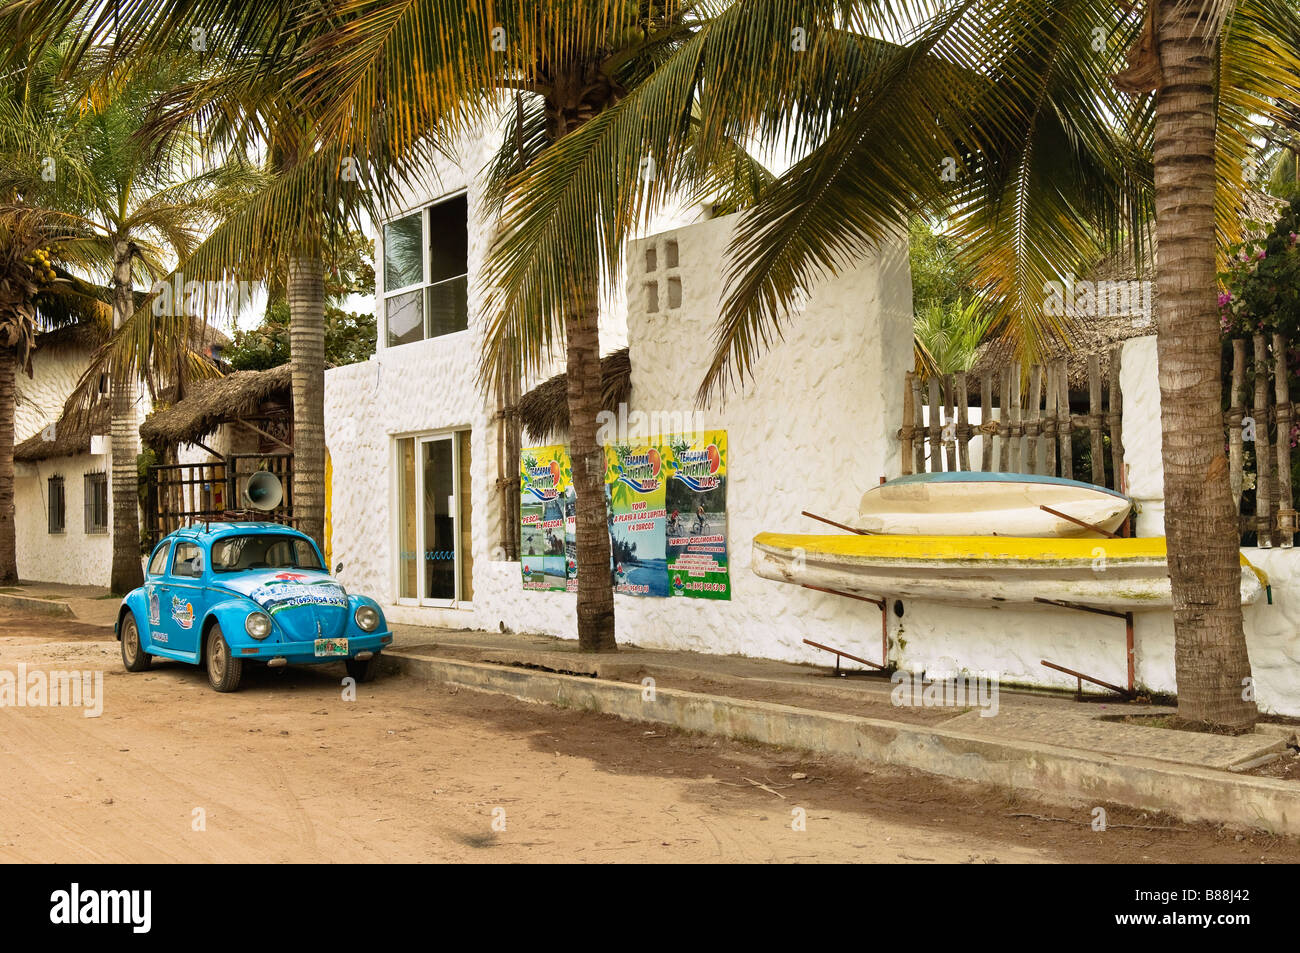 Teacapan Adventure Tours VW Bug and kayaks in the village of Teacapan Sinaloa Mexico - Stock Image